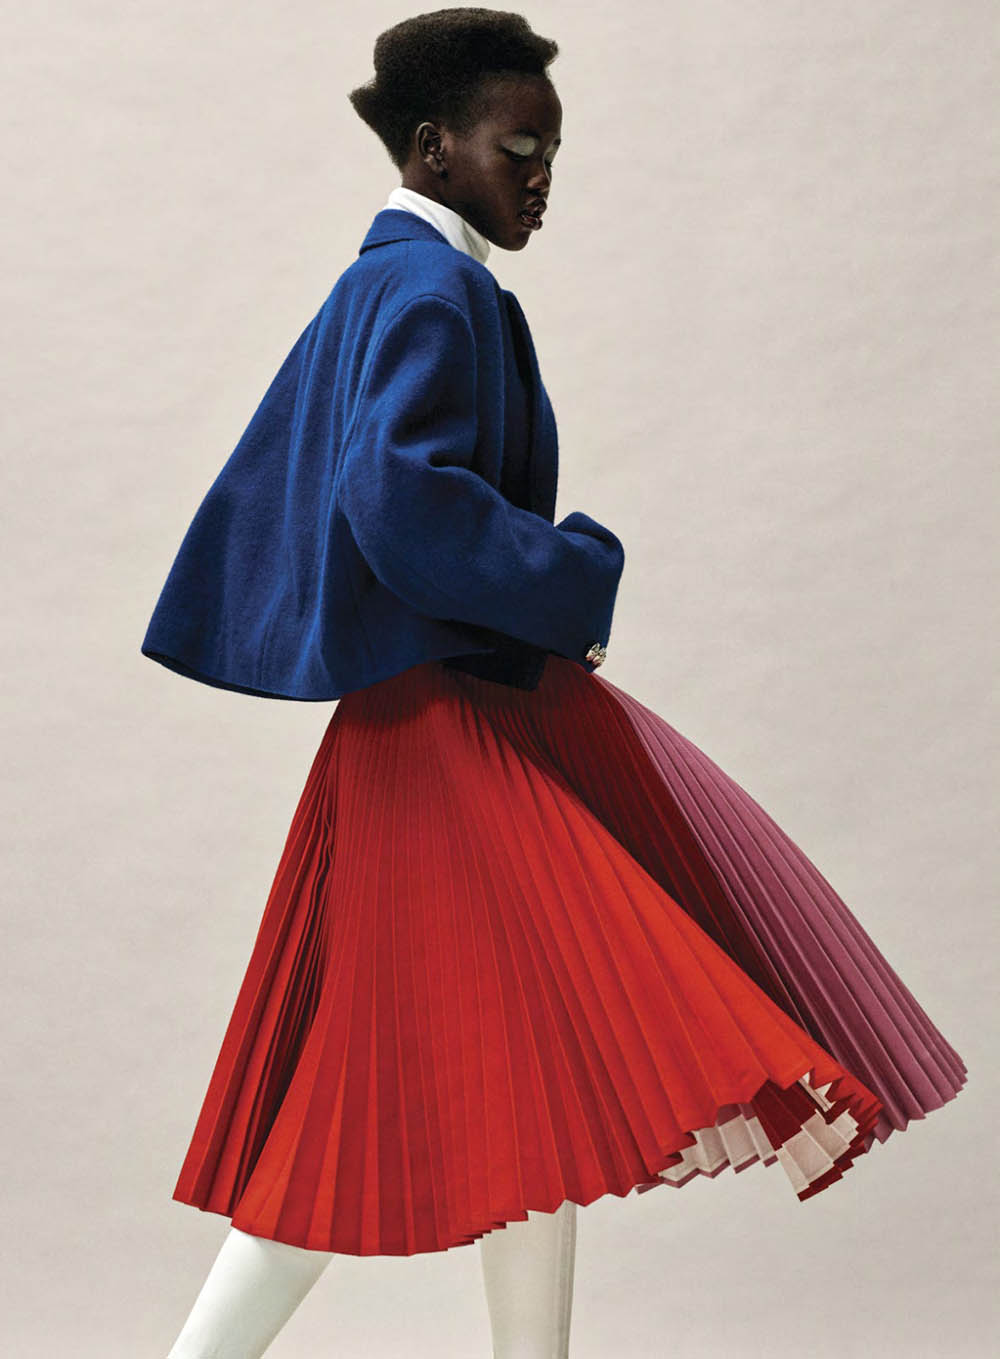 Adut Akech by Josh Olins for Vogue US January 2019